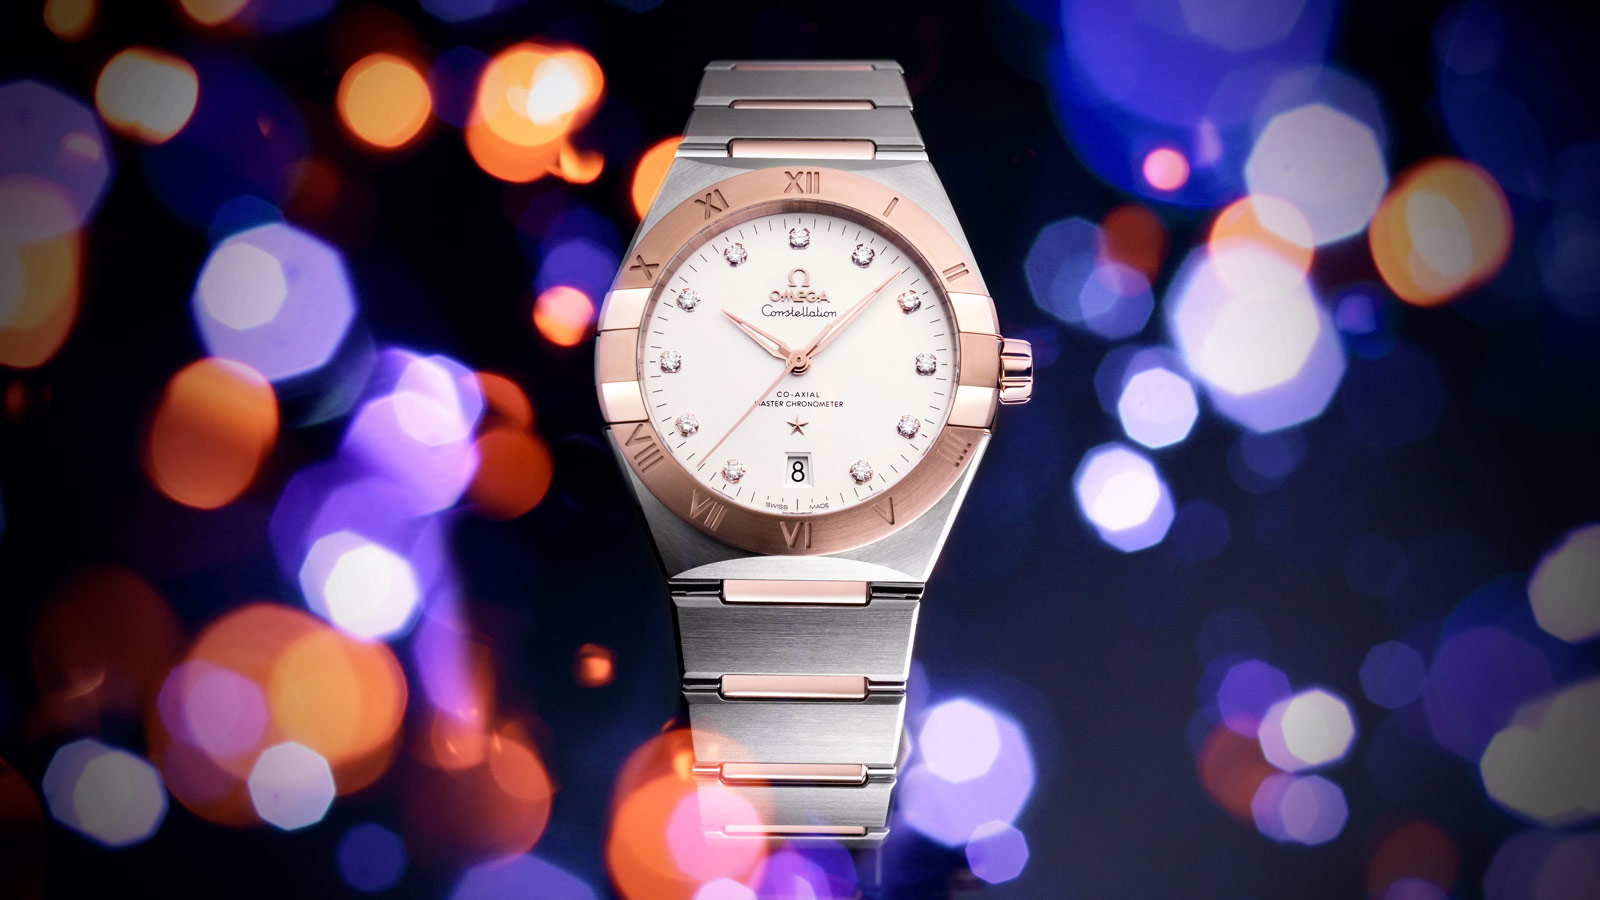 Constellation Constellation Constellation OMEGA Co‑Axial Master Chronometer 39mm Watch - 131.20.39.20.52.001